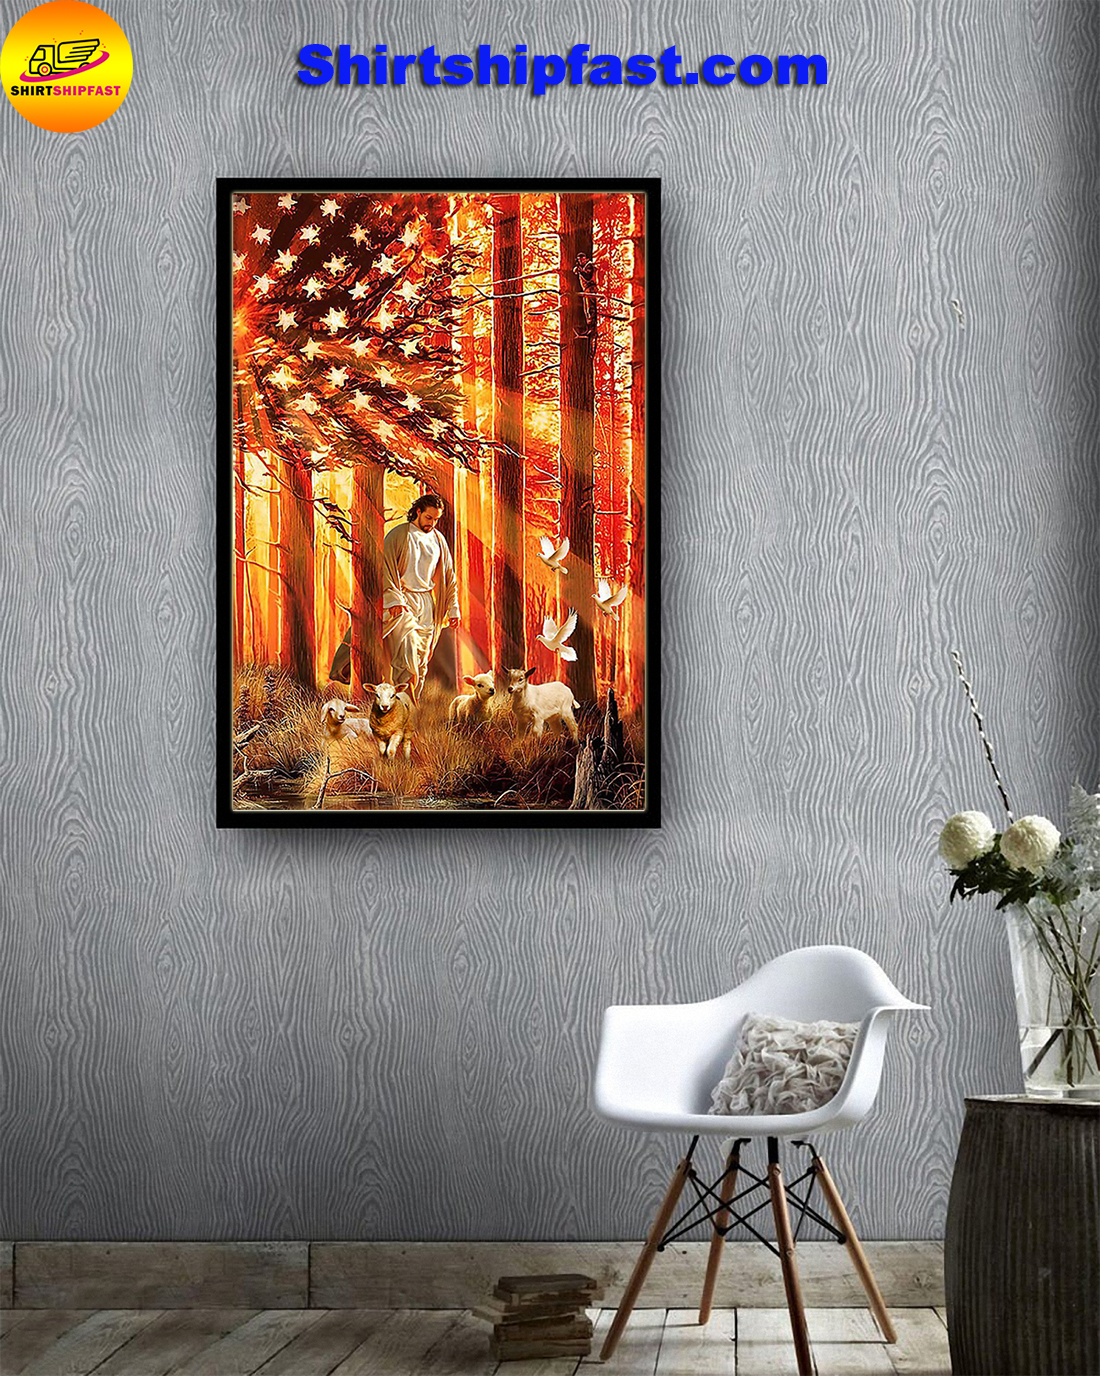 Lamb Dove God American flag poster - Picture 1